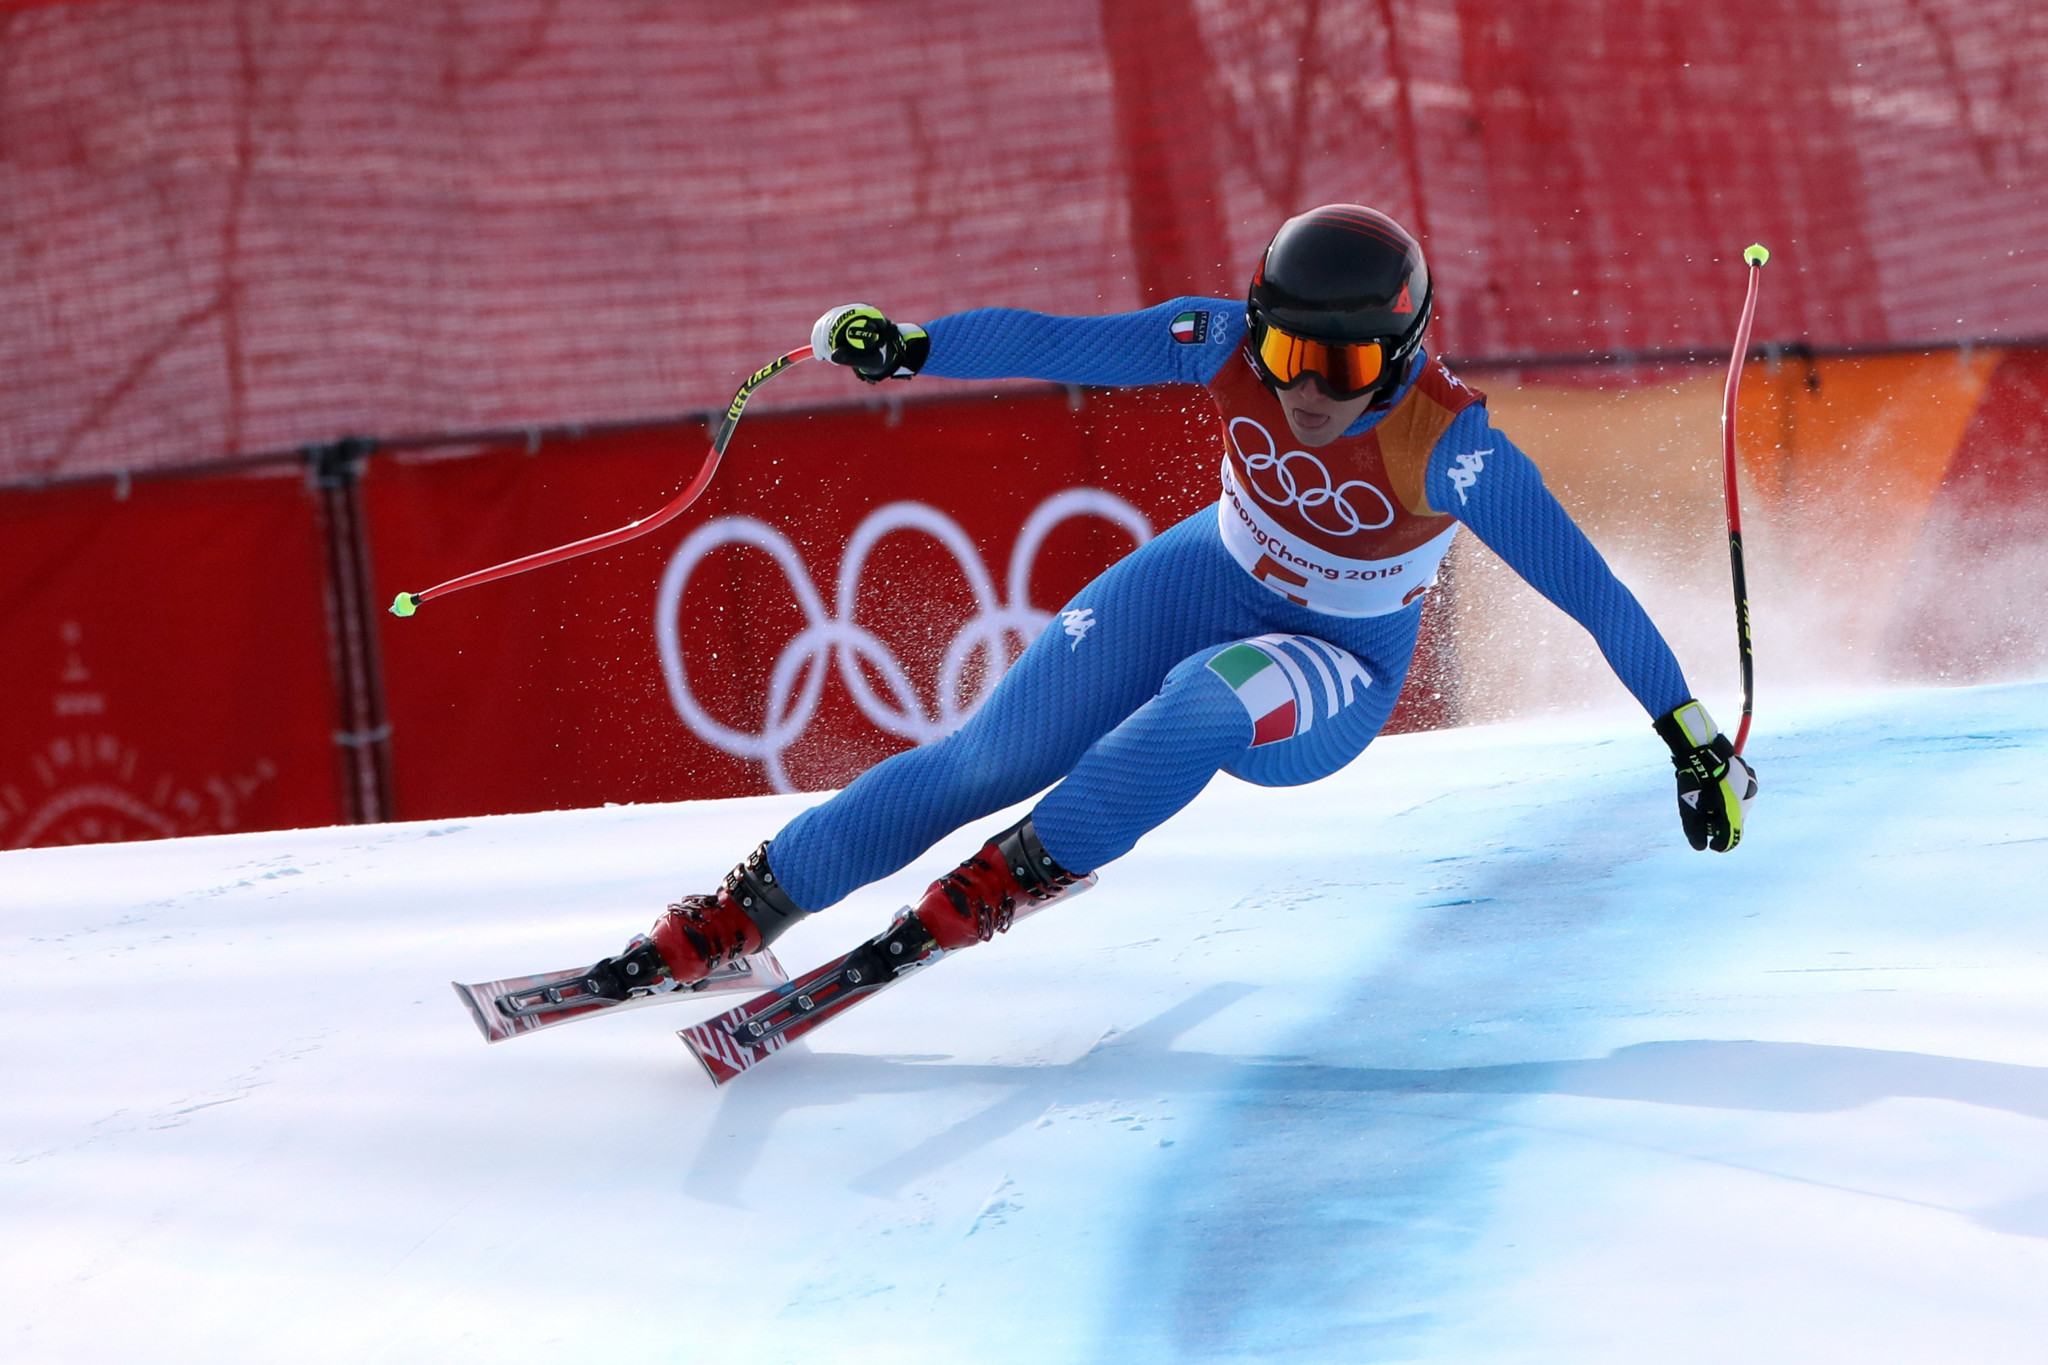 Sofia Goggia, winner of the women's downhill, was among Italy's three gold medallists at Pyeongchang 2018 ©Getty Images